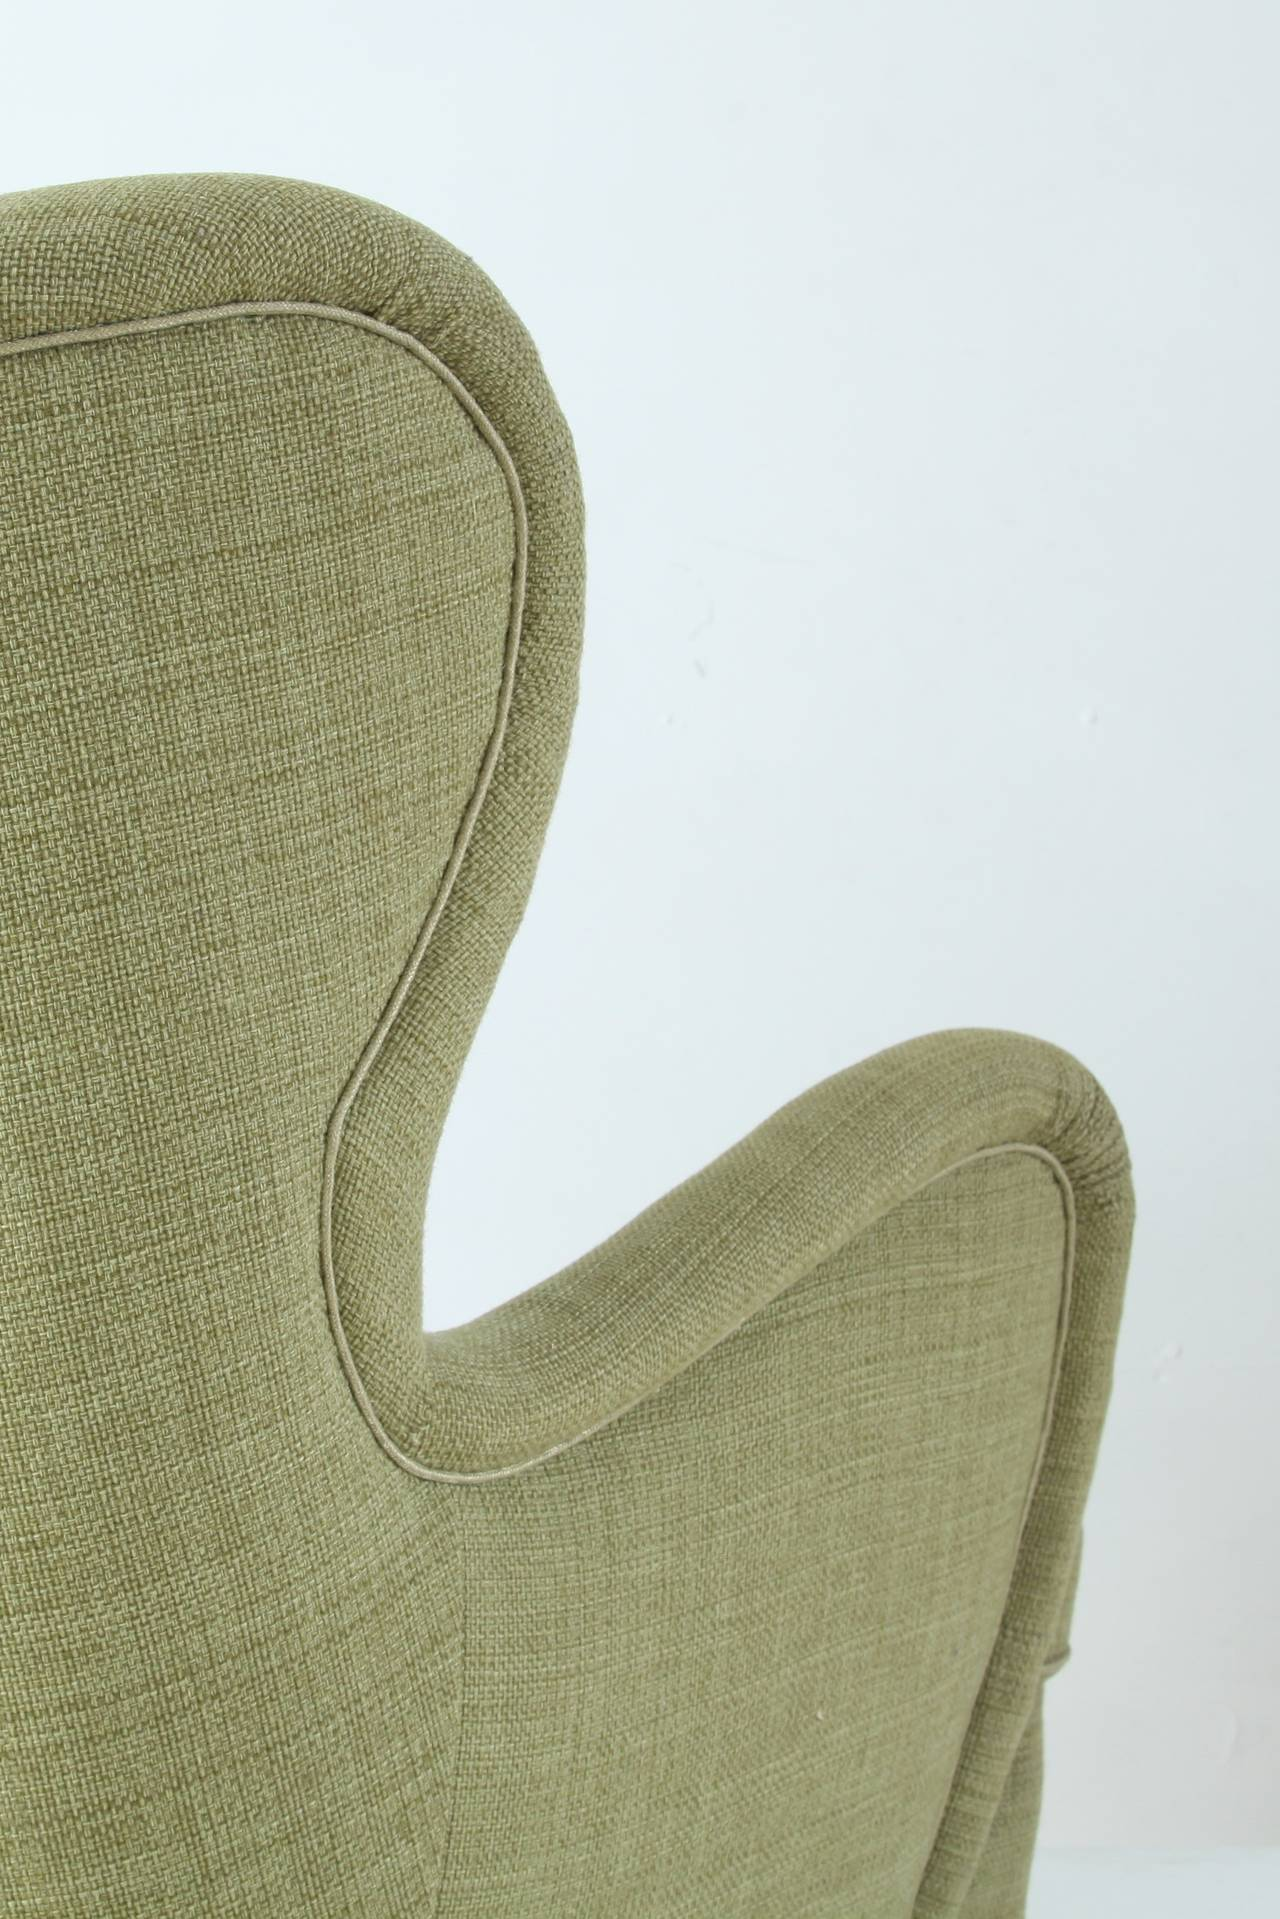 Otto Schulz High Back Armchair For Boet Sweden 1930s For